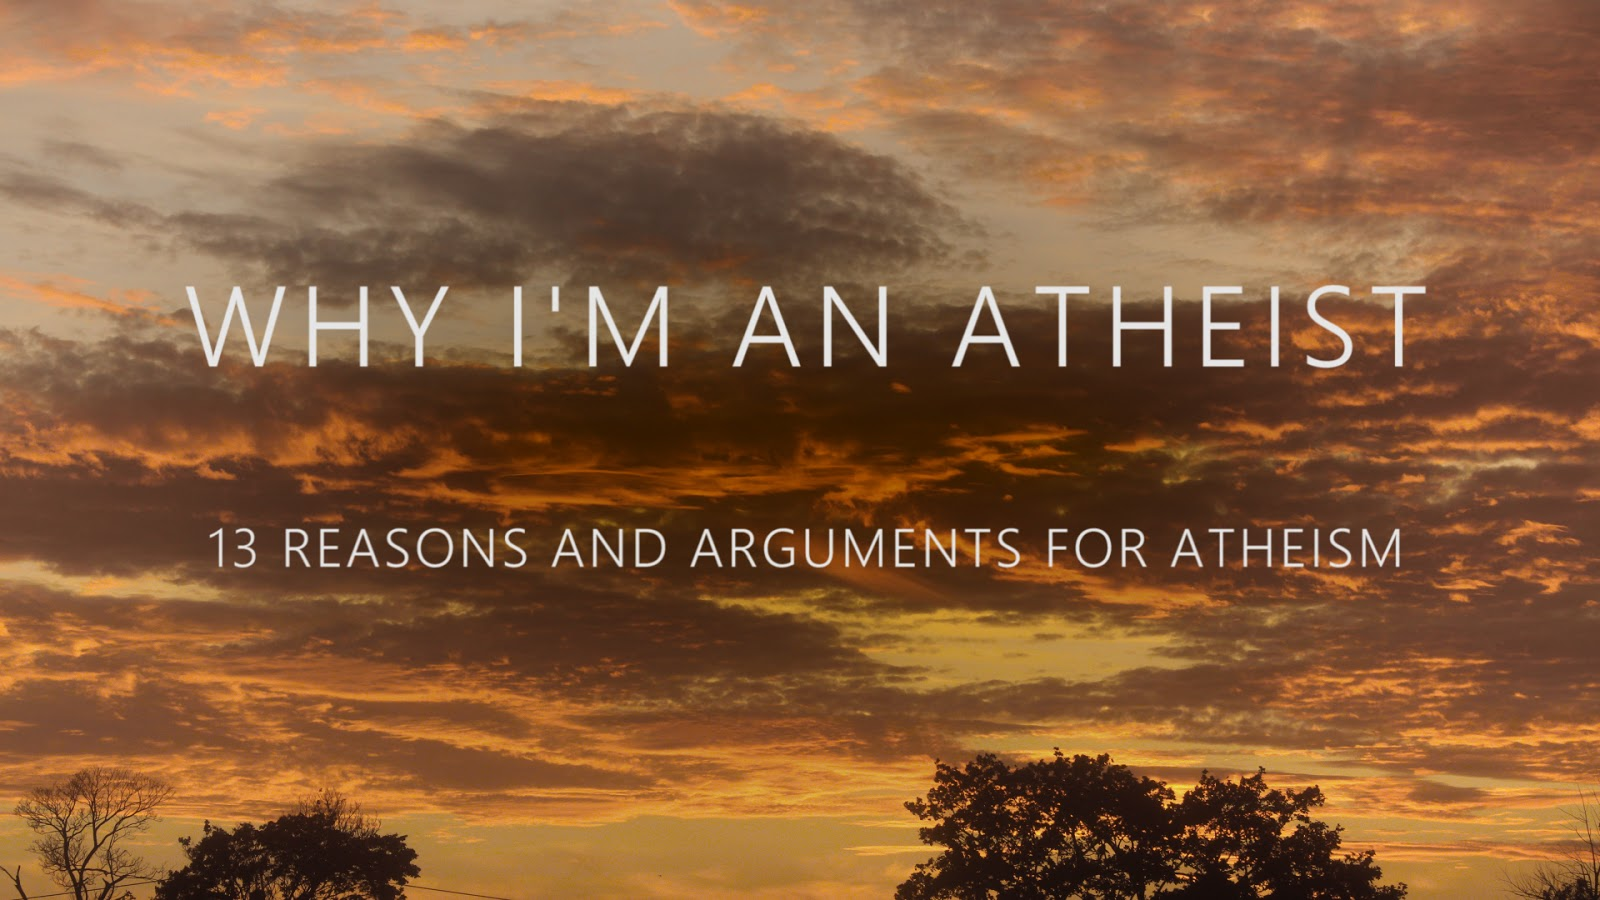 why i m an atheist 13 reasons arguments for atheism